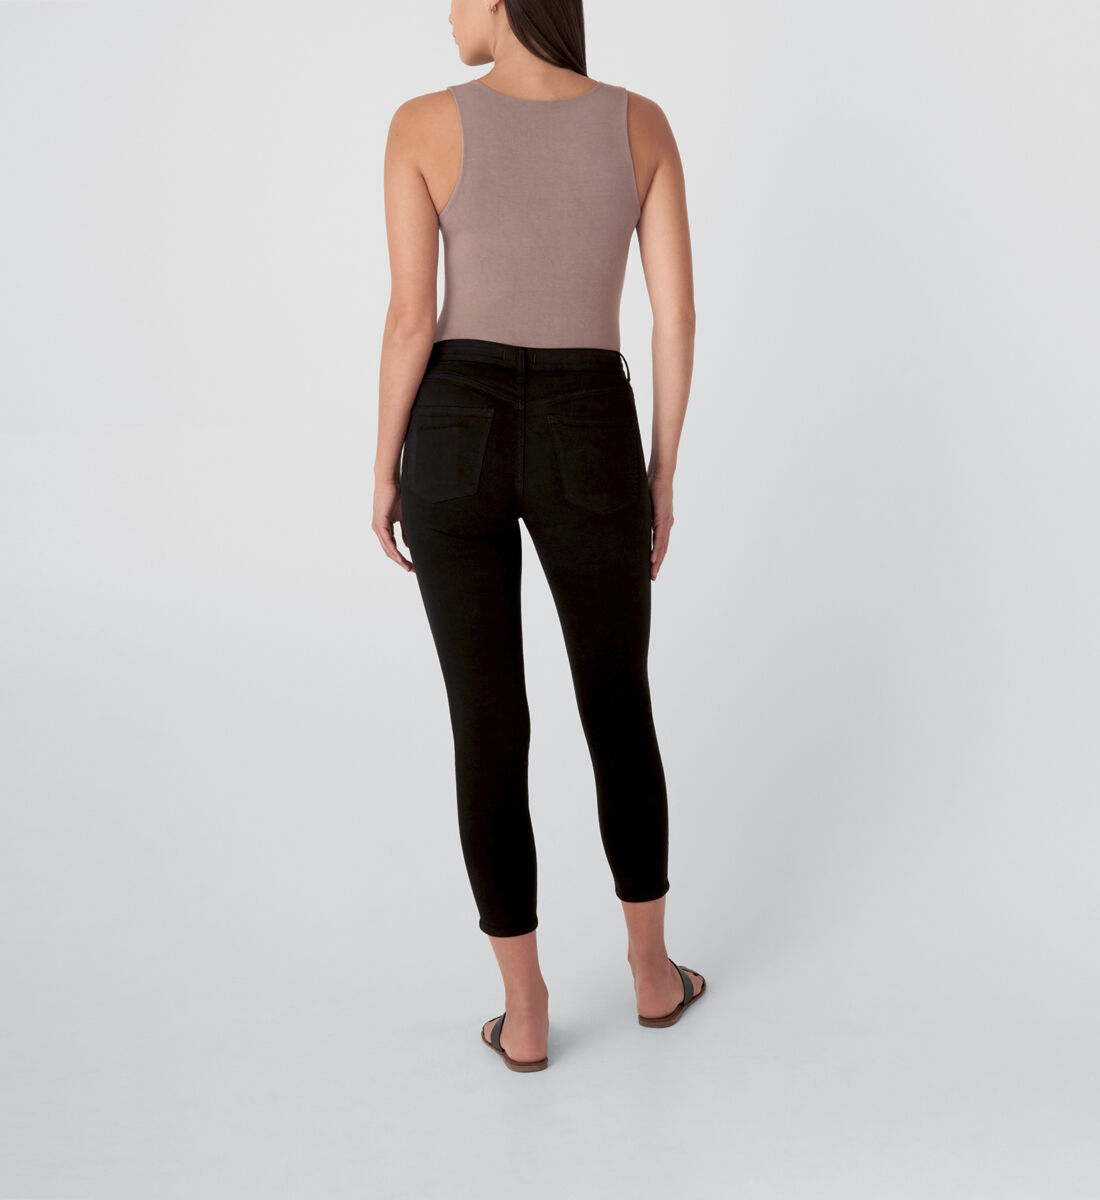 Most Wanted Mid Rise Skinny Jeans,Black Back